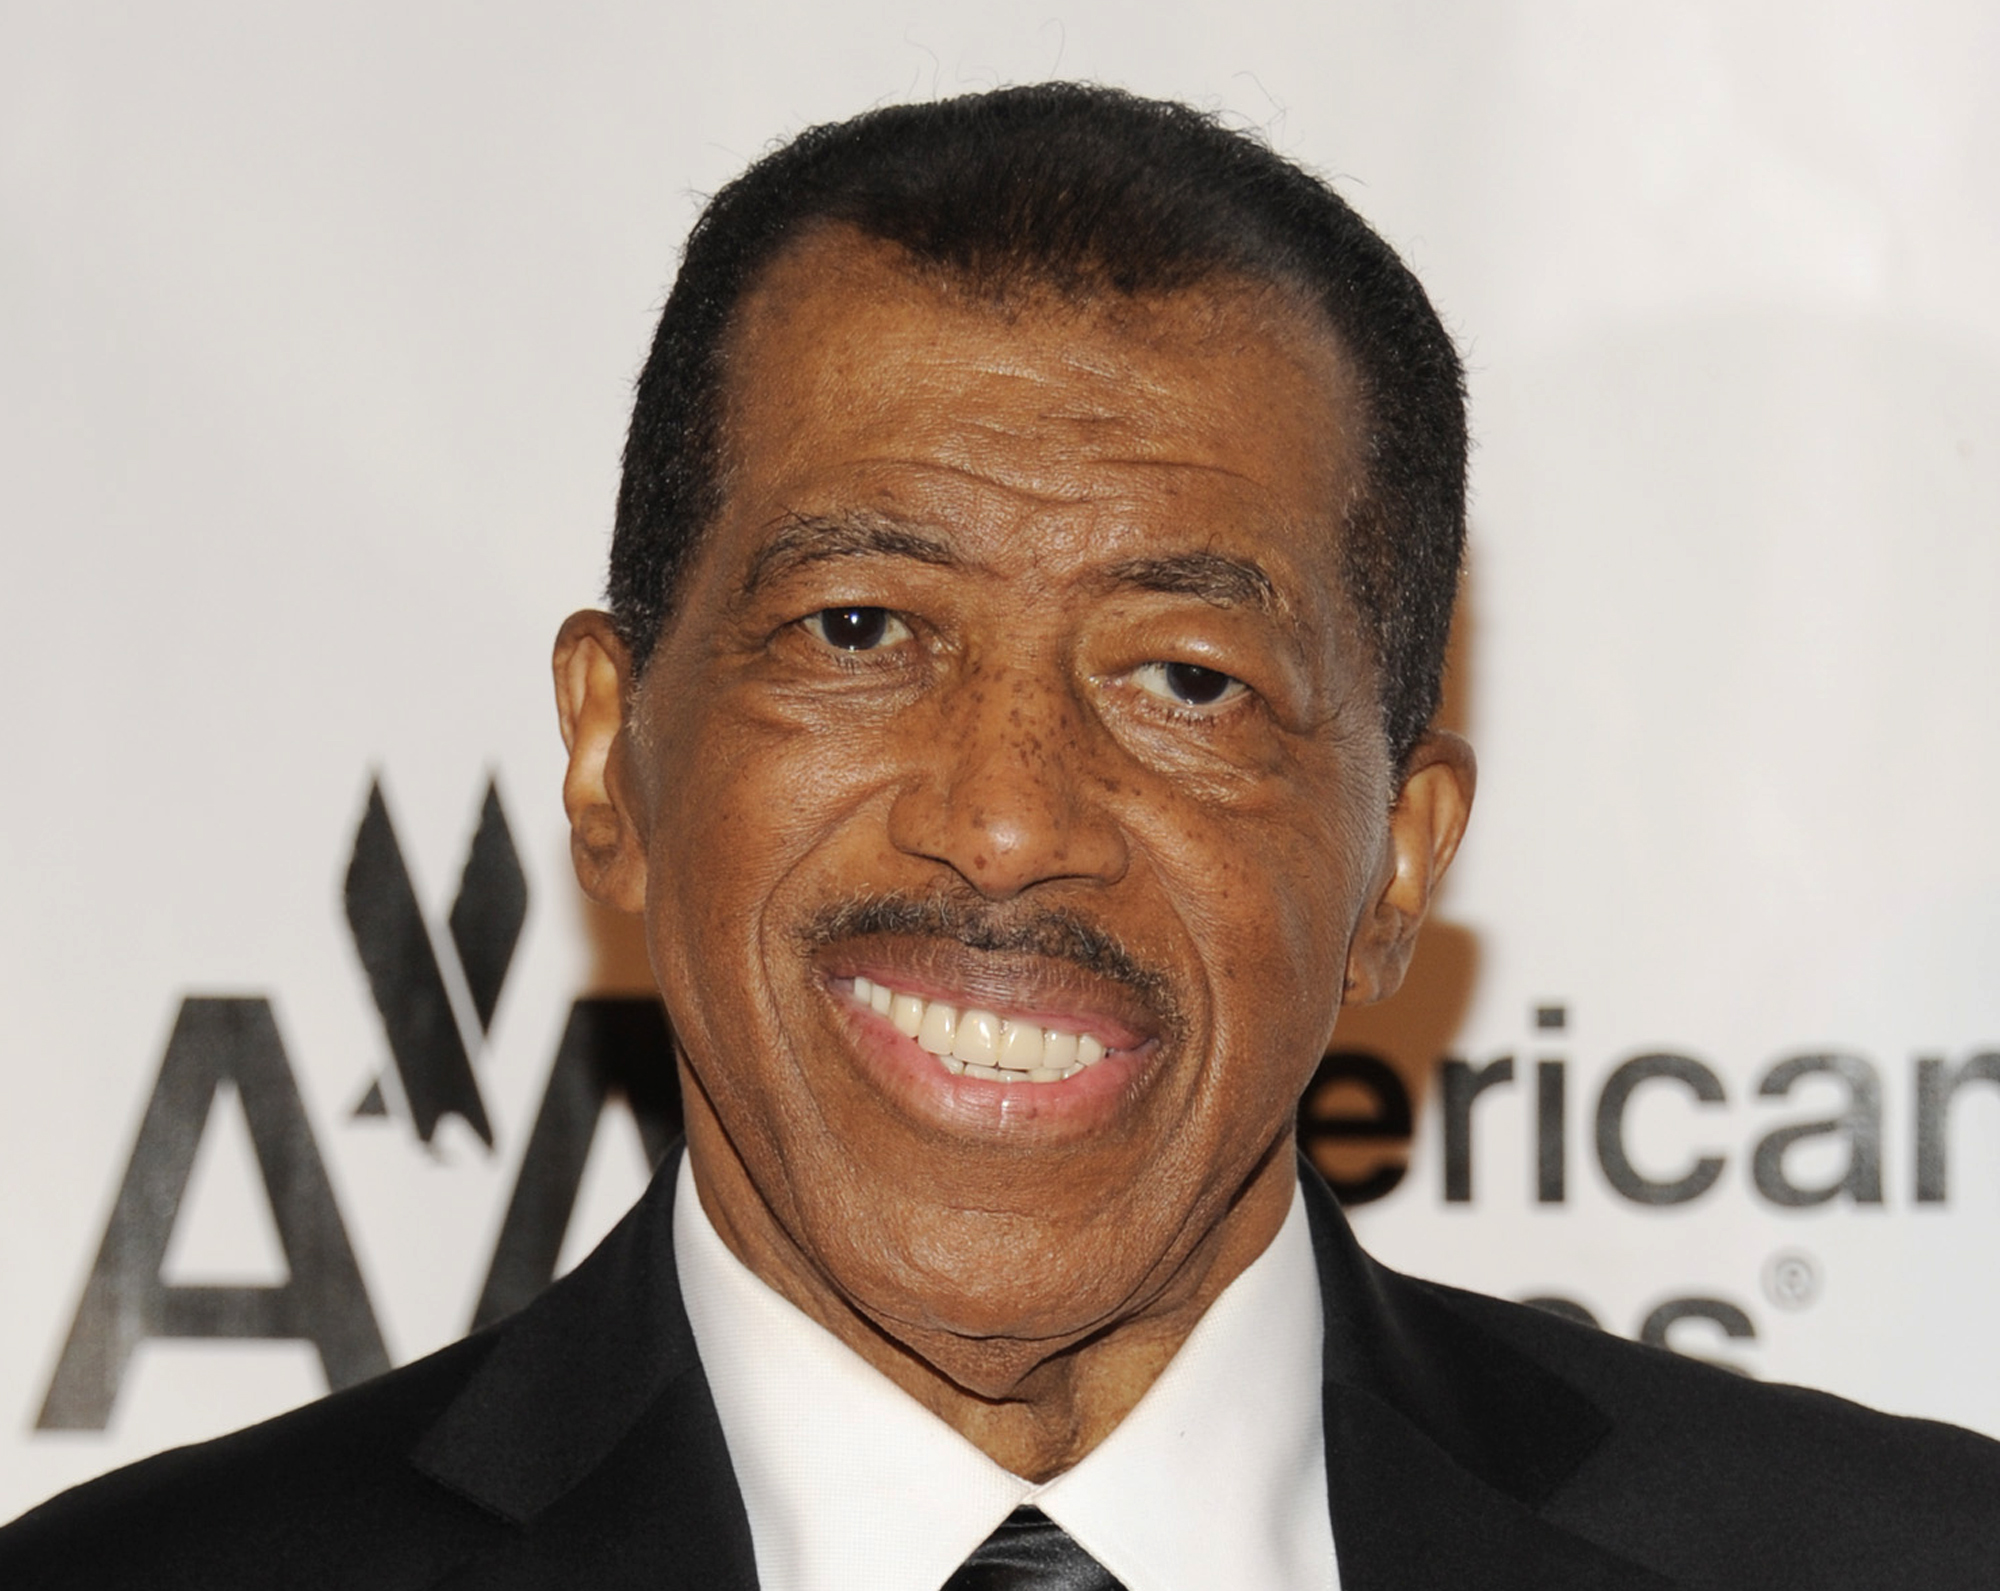 FILE - In this June 14, 2012, file photo, Towering Performance Award inductee Ben E. King arrives at the 2012 Songwriters Hal